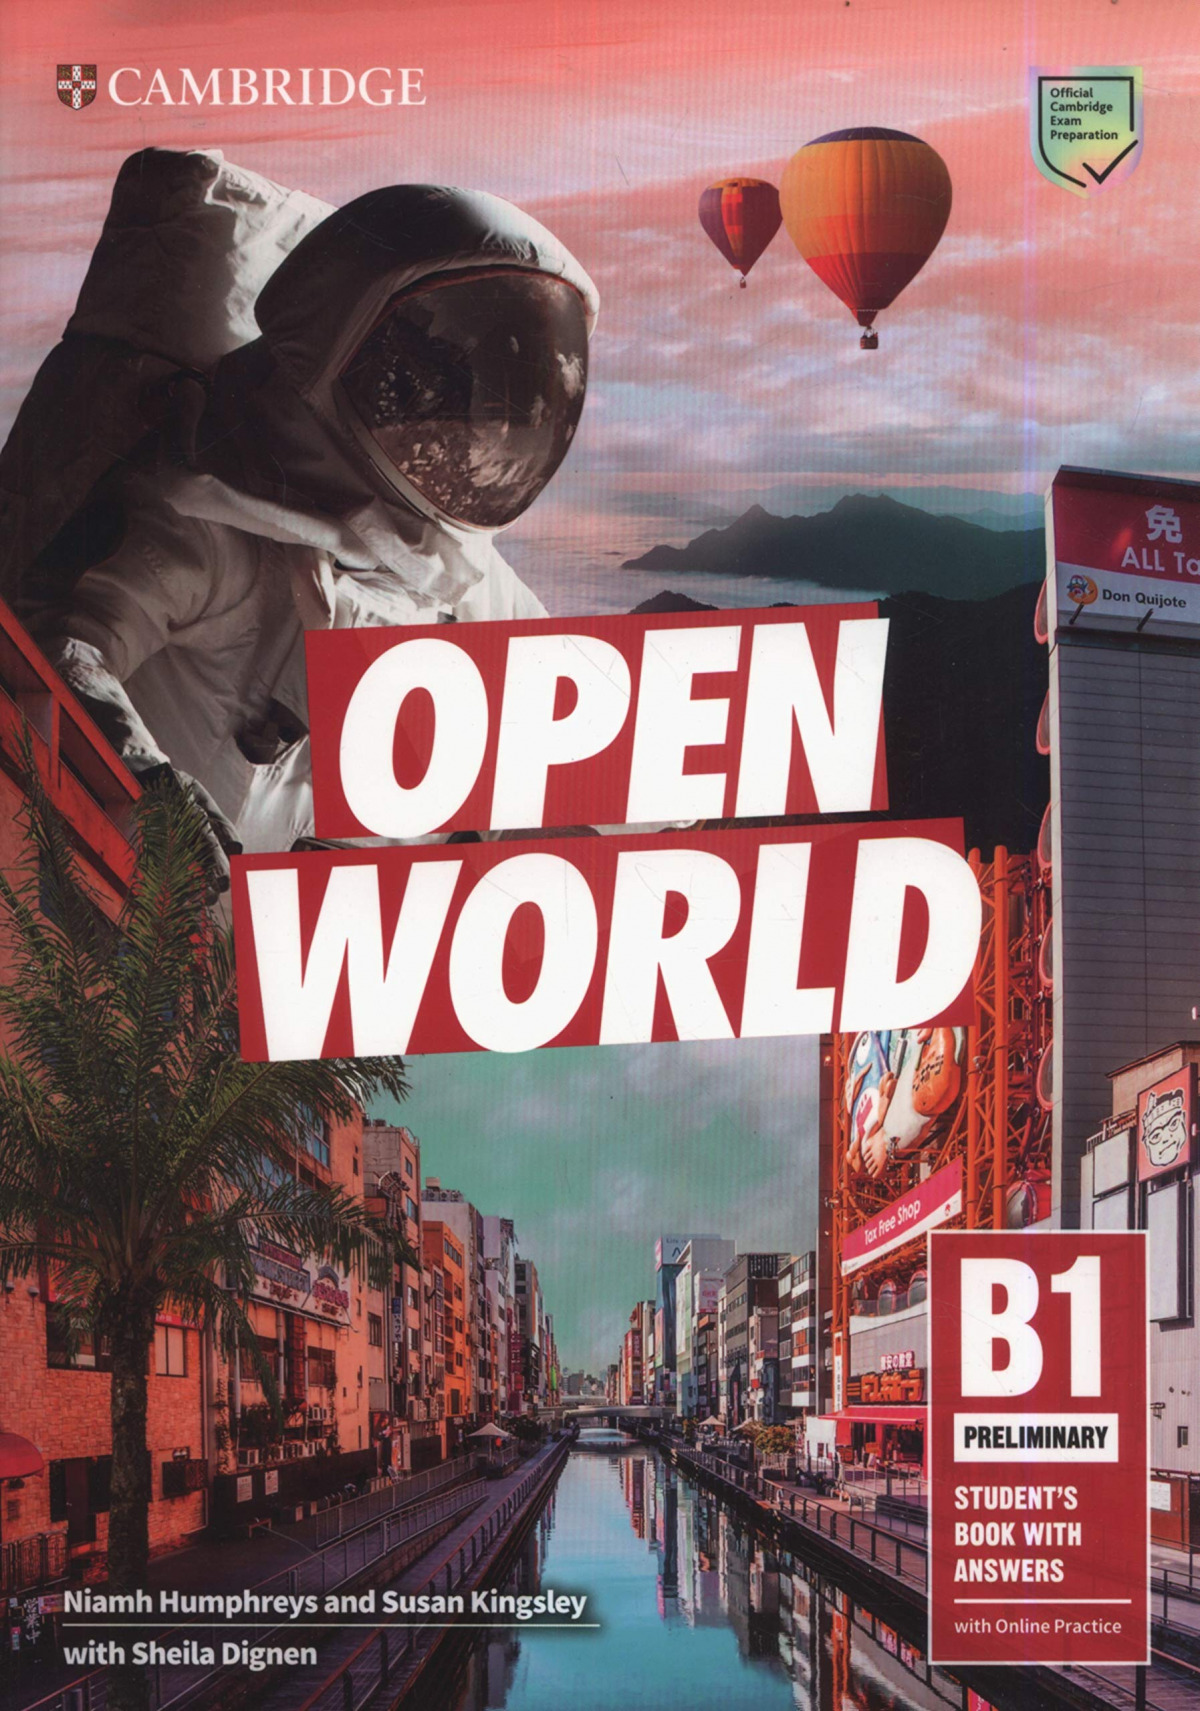 Open World Preliminary. StudentÆs Book with Answers with Online Practice.